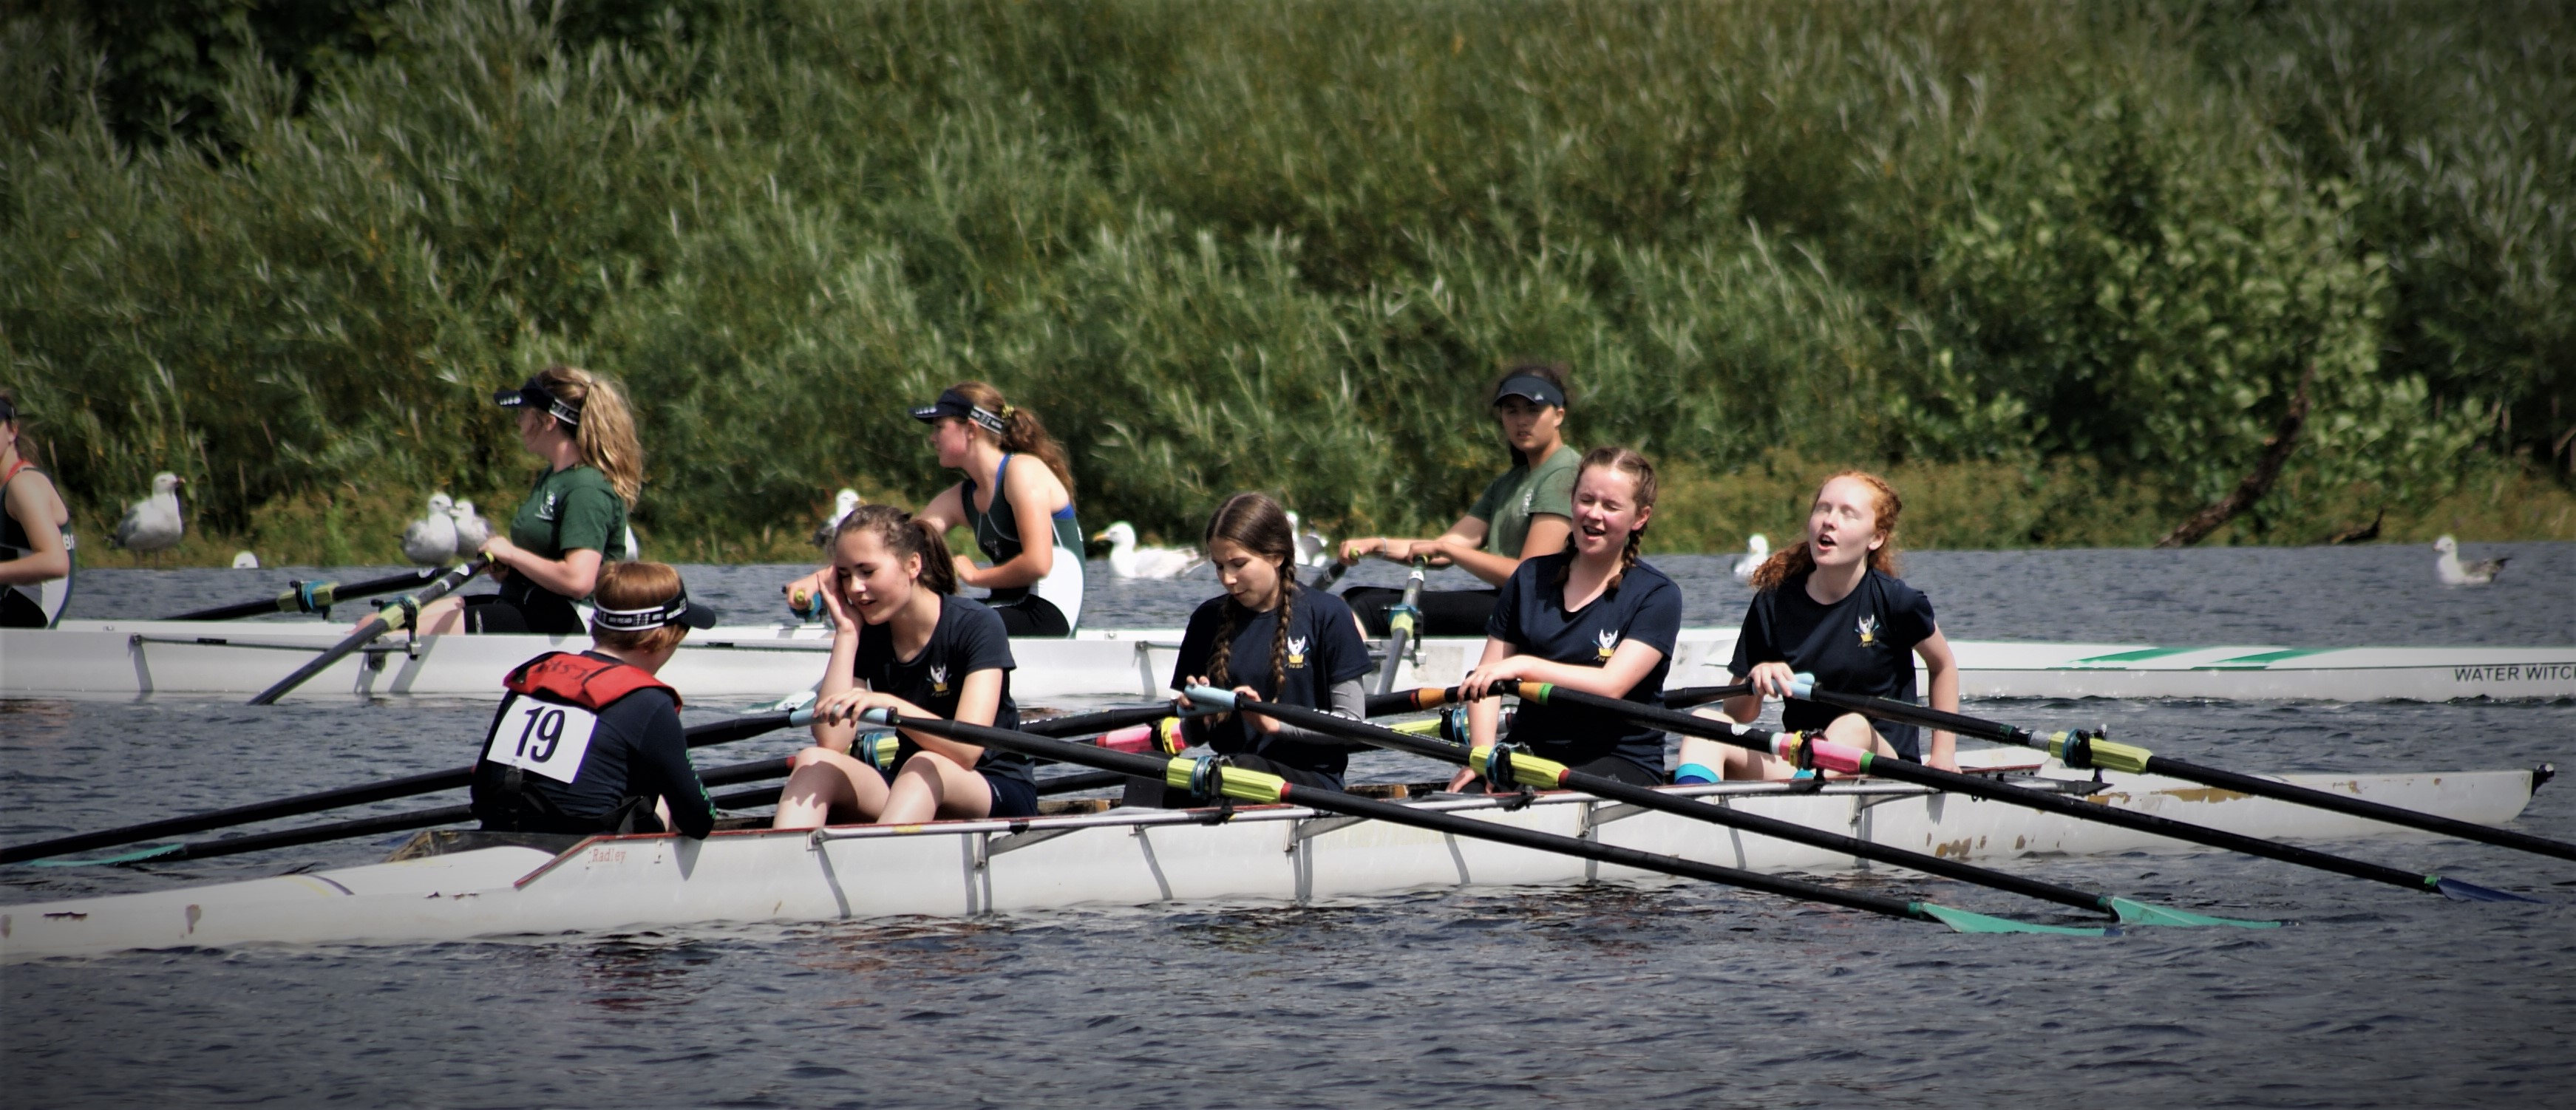 Community Rowing - Not as Posh as you Think! by City of Swansea Rowing Club fundraising photo 1